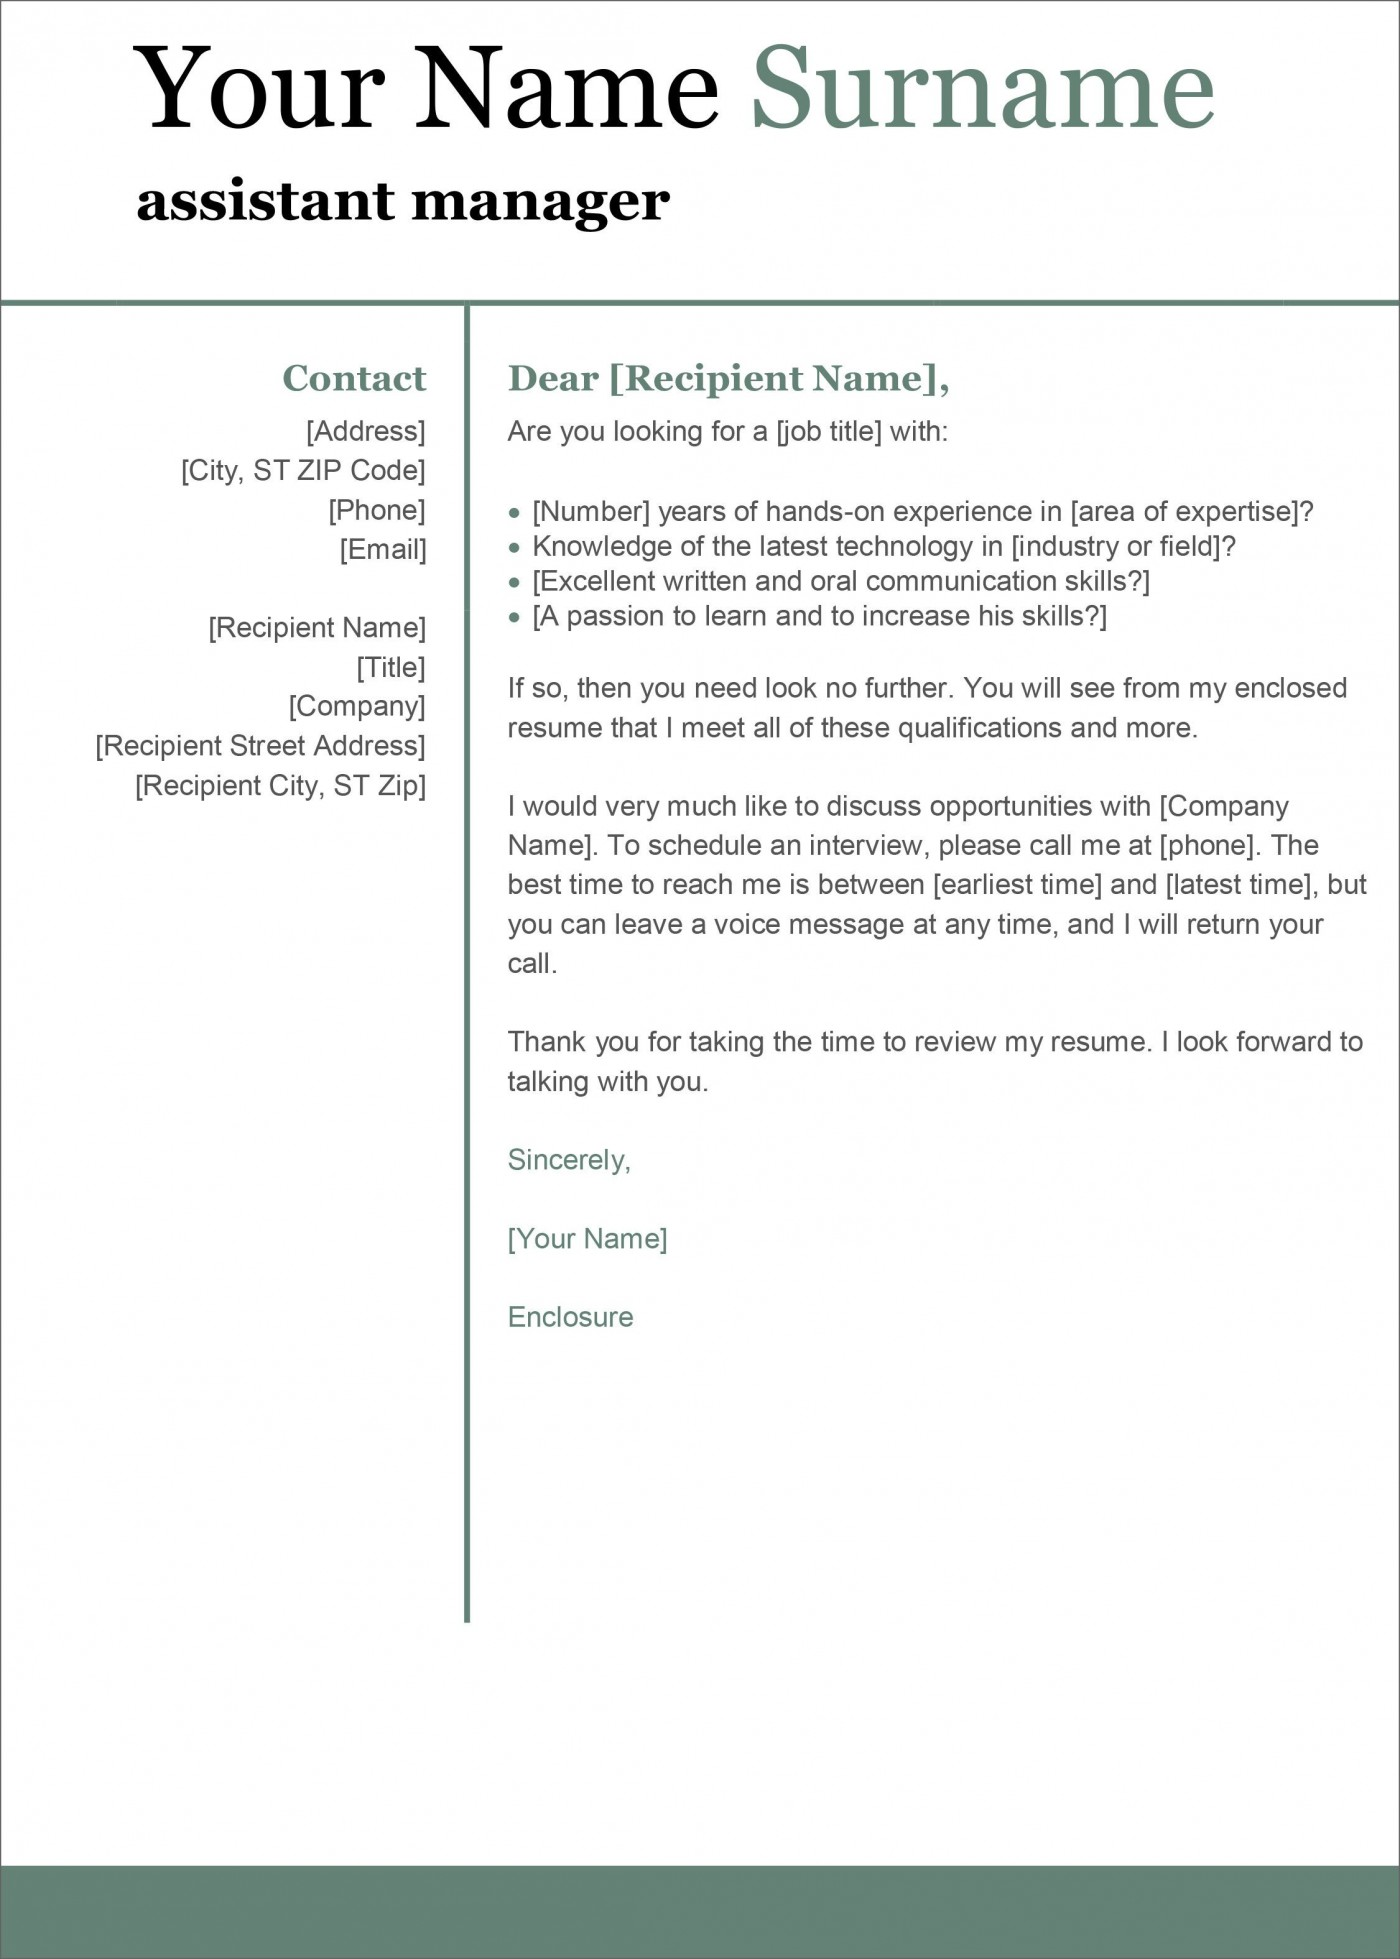 004 Singular Cover Letter Template Microsoft Word Inspiration  2007 Fax1400